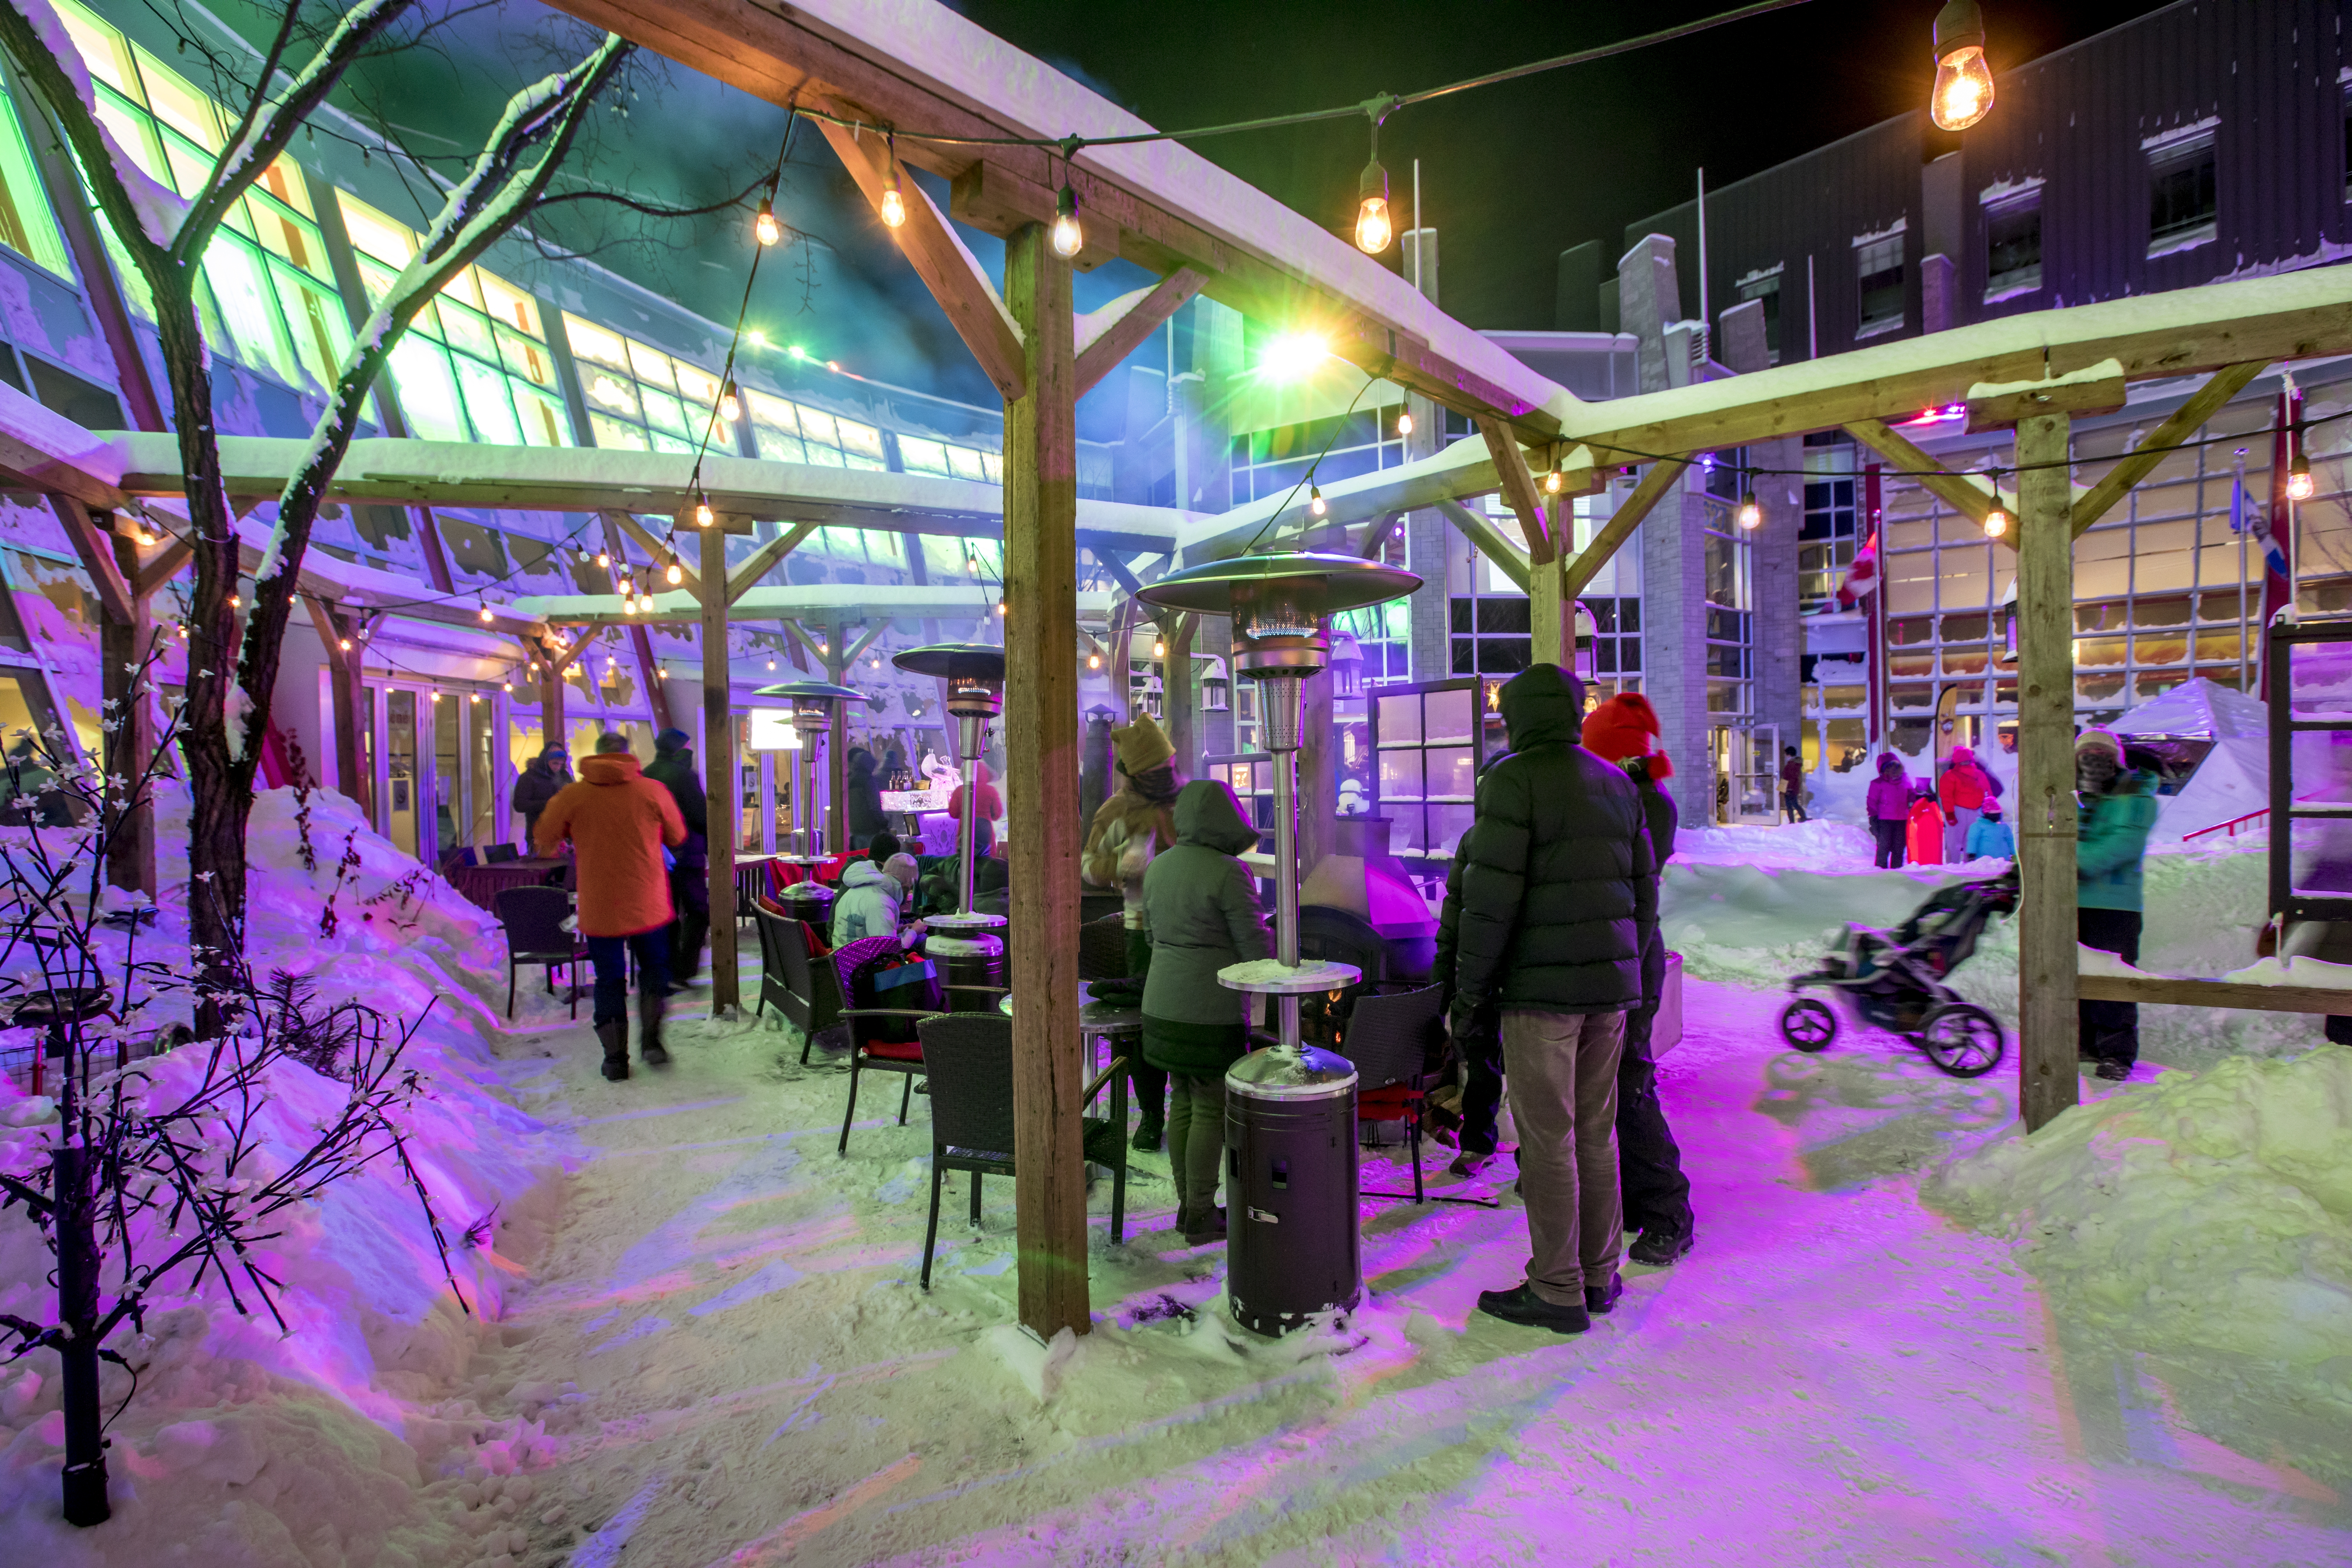 Winter City Design: 3 Ways to Save Small Businesses this COVID-19 Winter